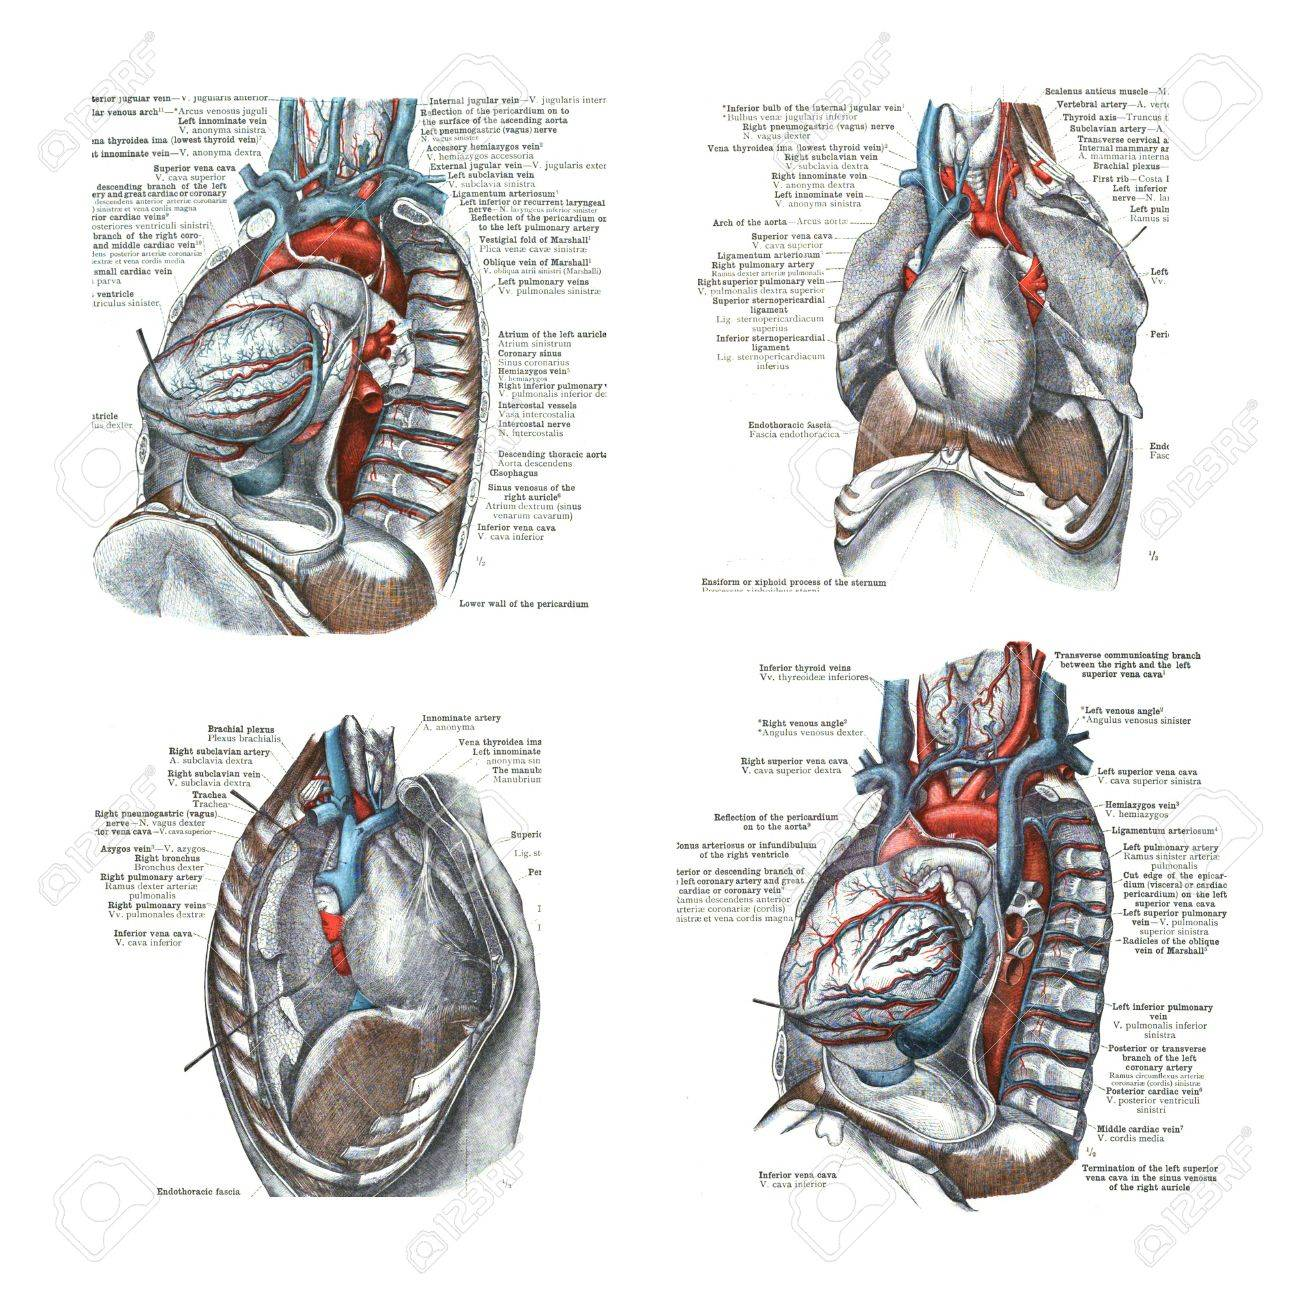 4 Views Of The Heart And Thoracic Cavity, From An Atlas Of Human ...